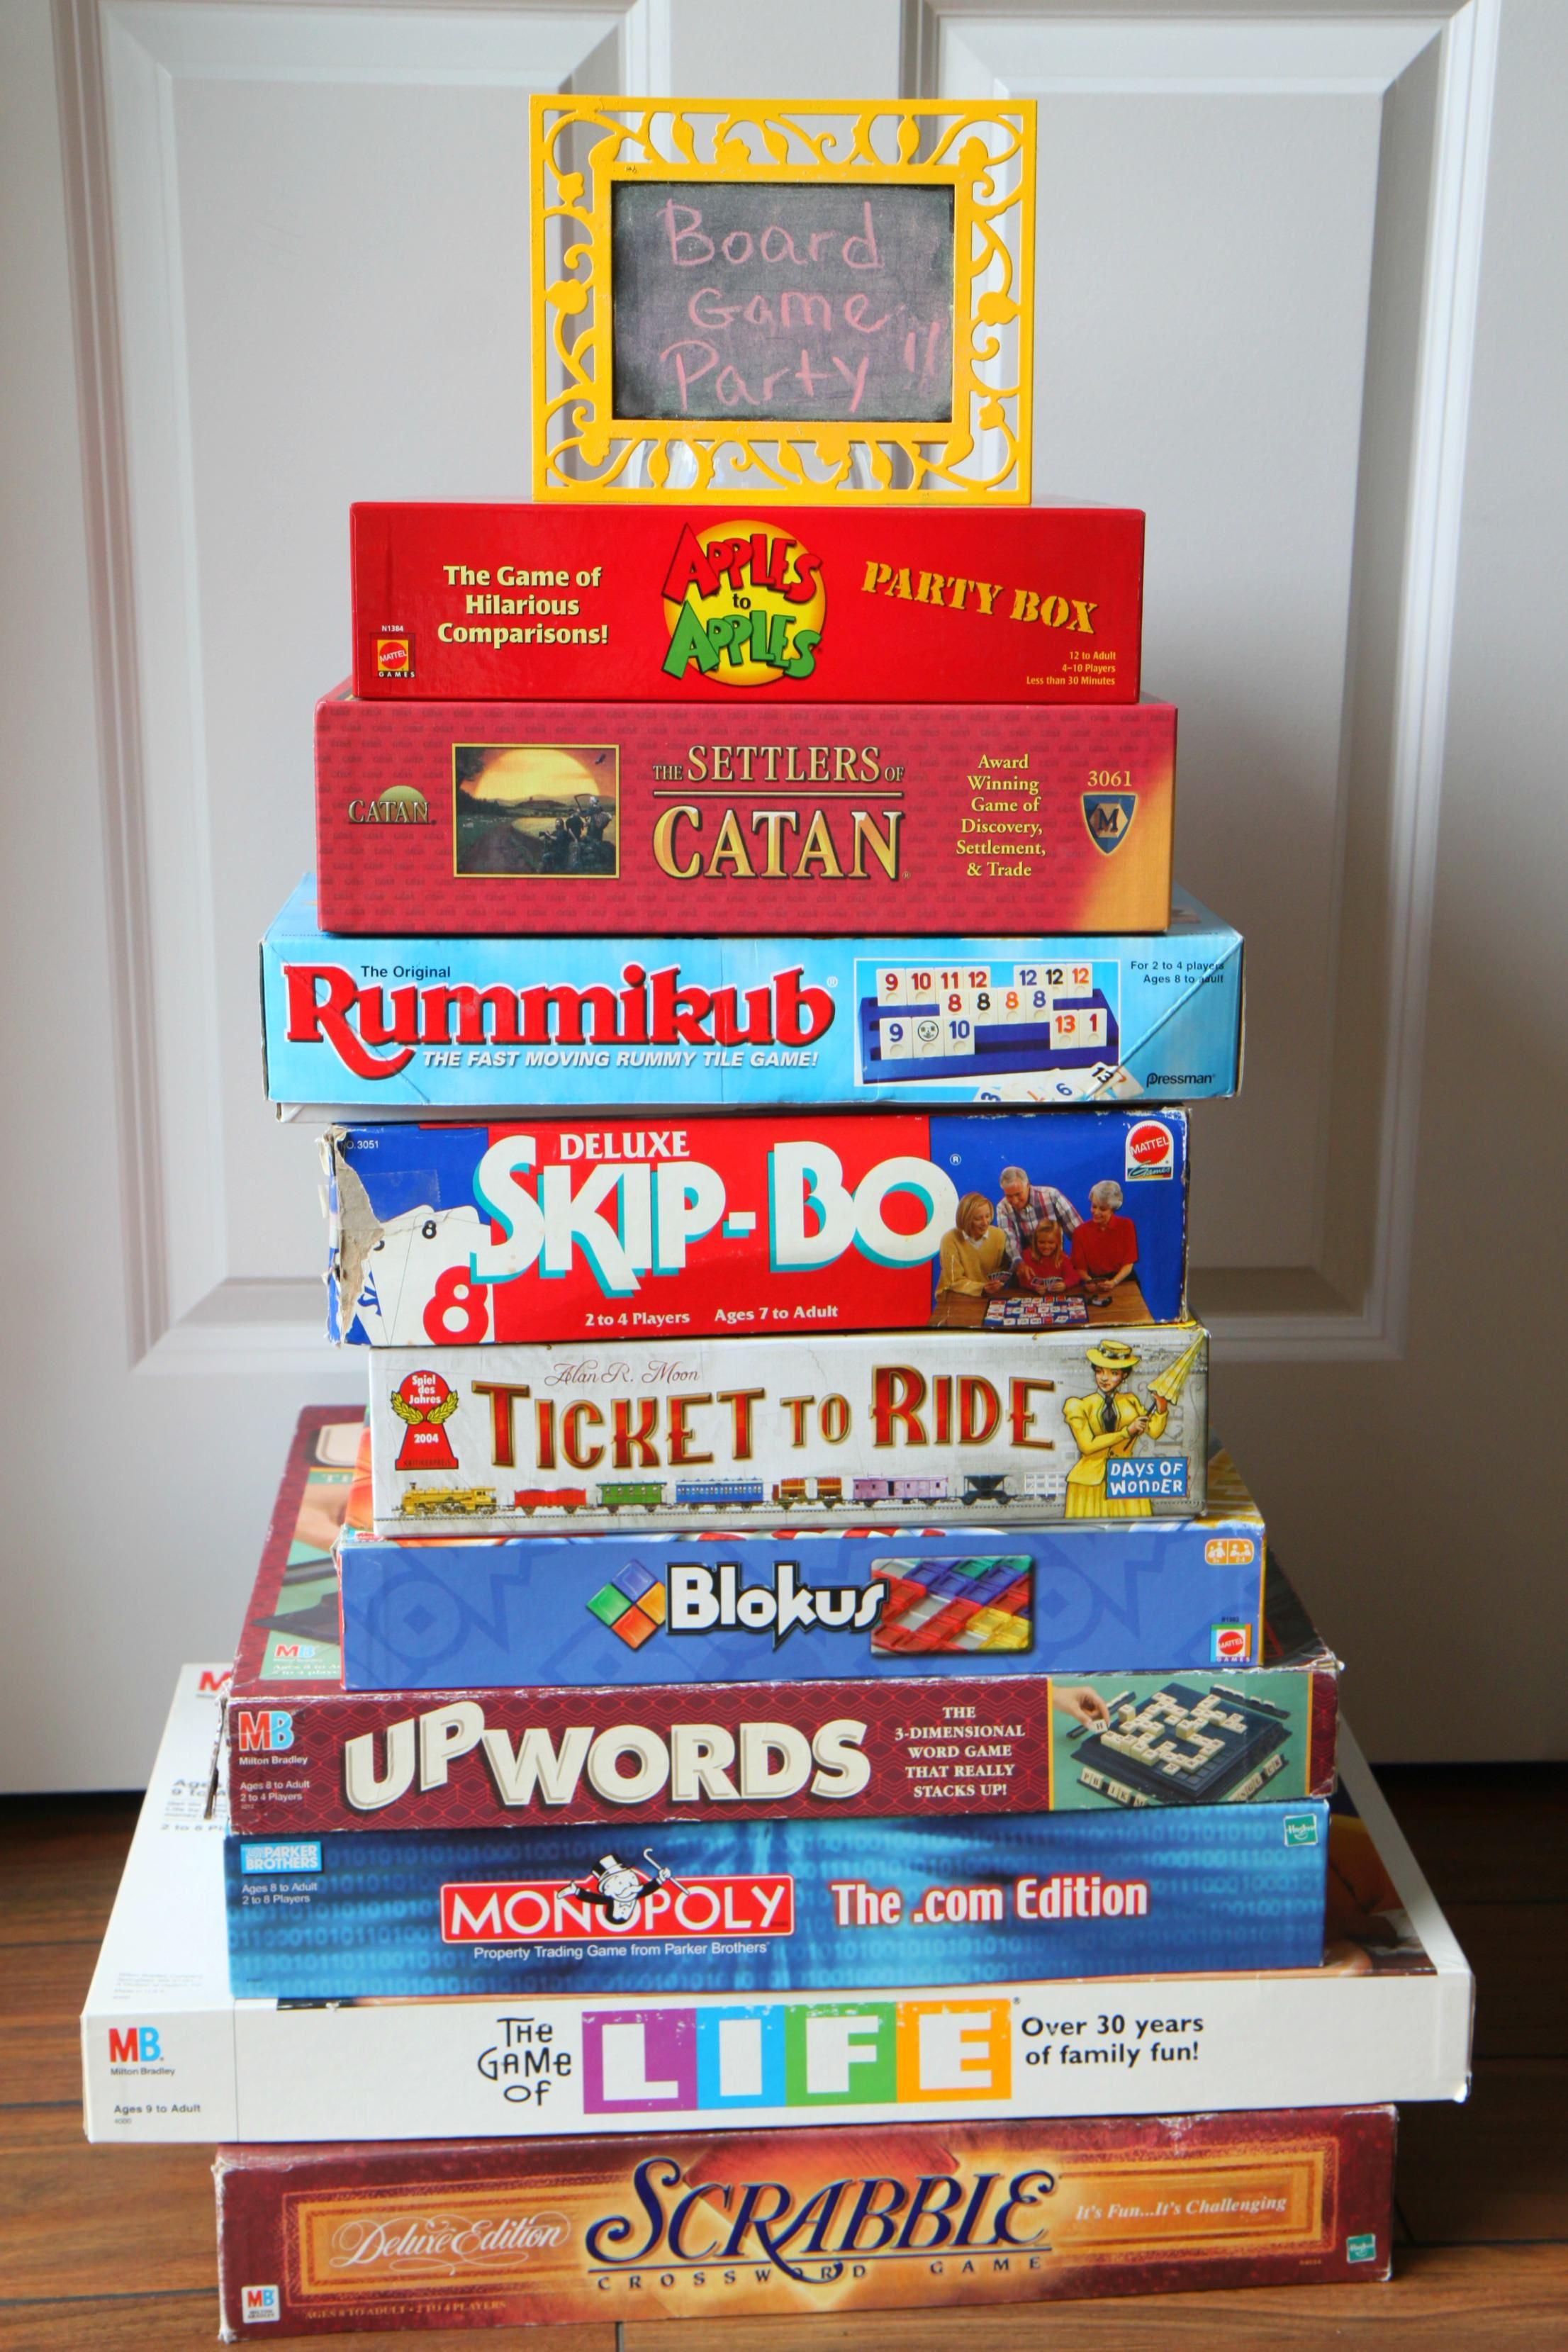 Throw a Board Game Party with Goodwill Game night